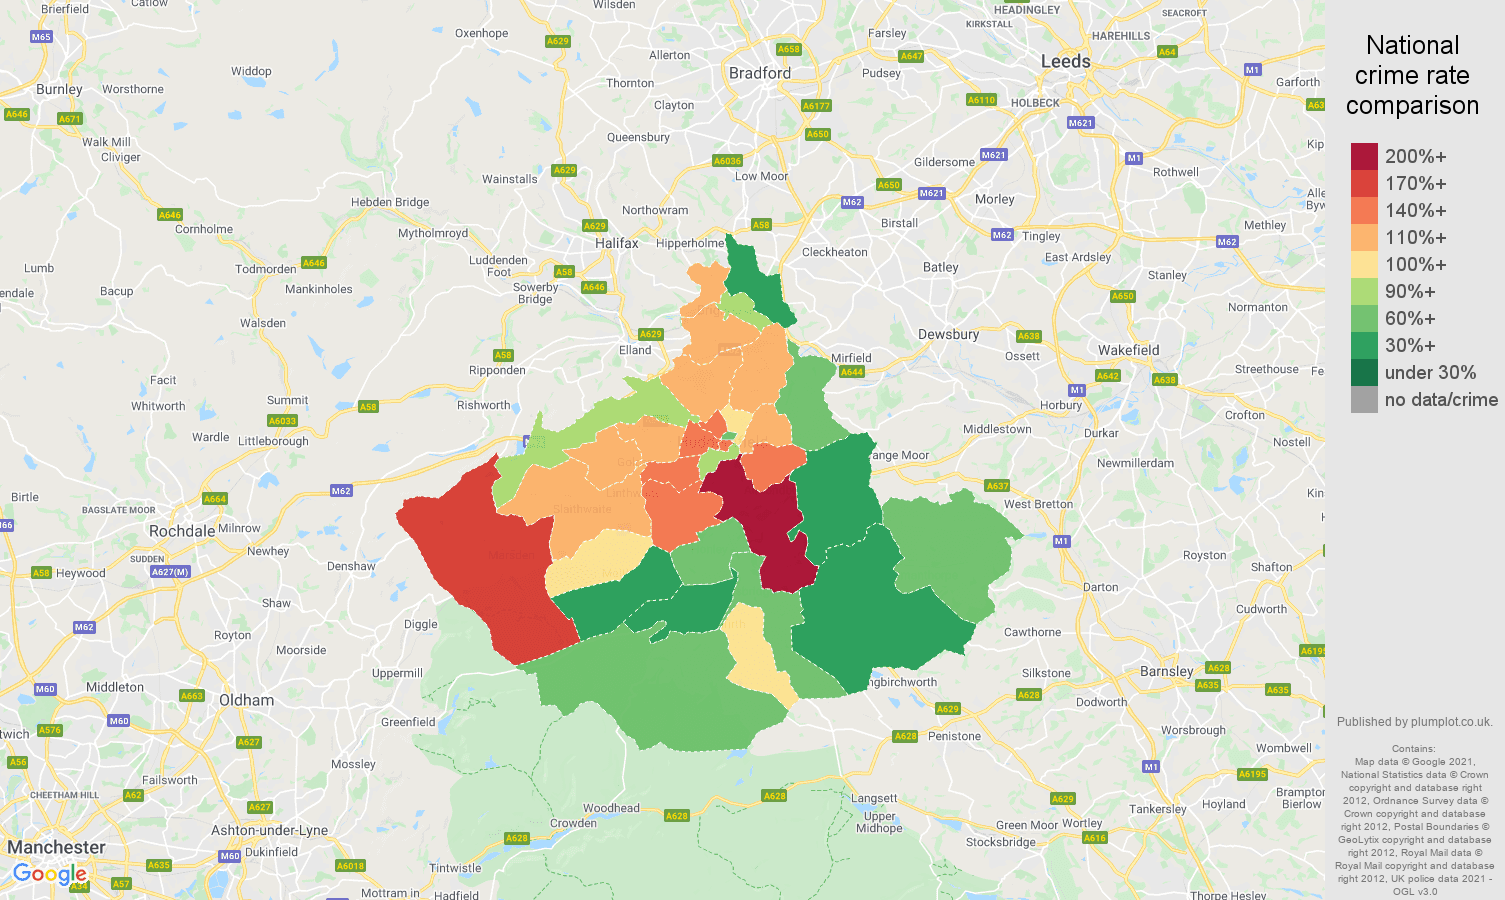 Huddersfield criminal damage and arson crime rate comparison map